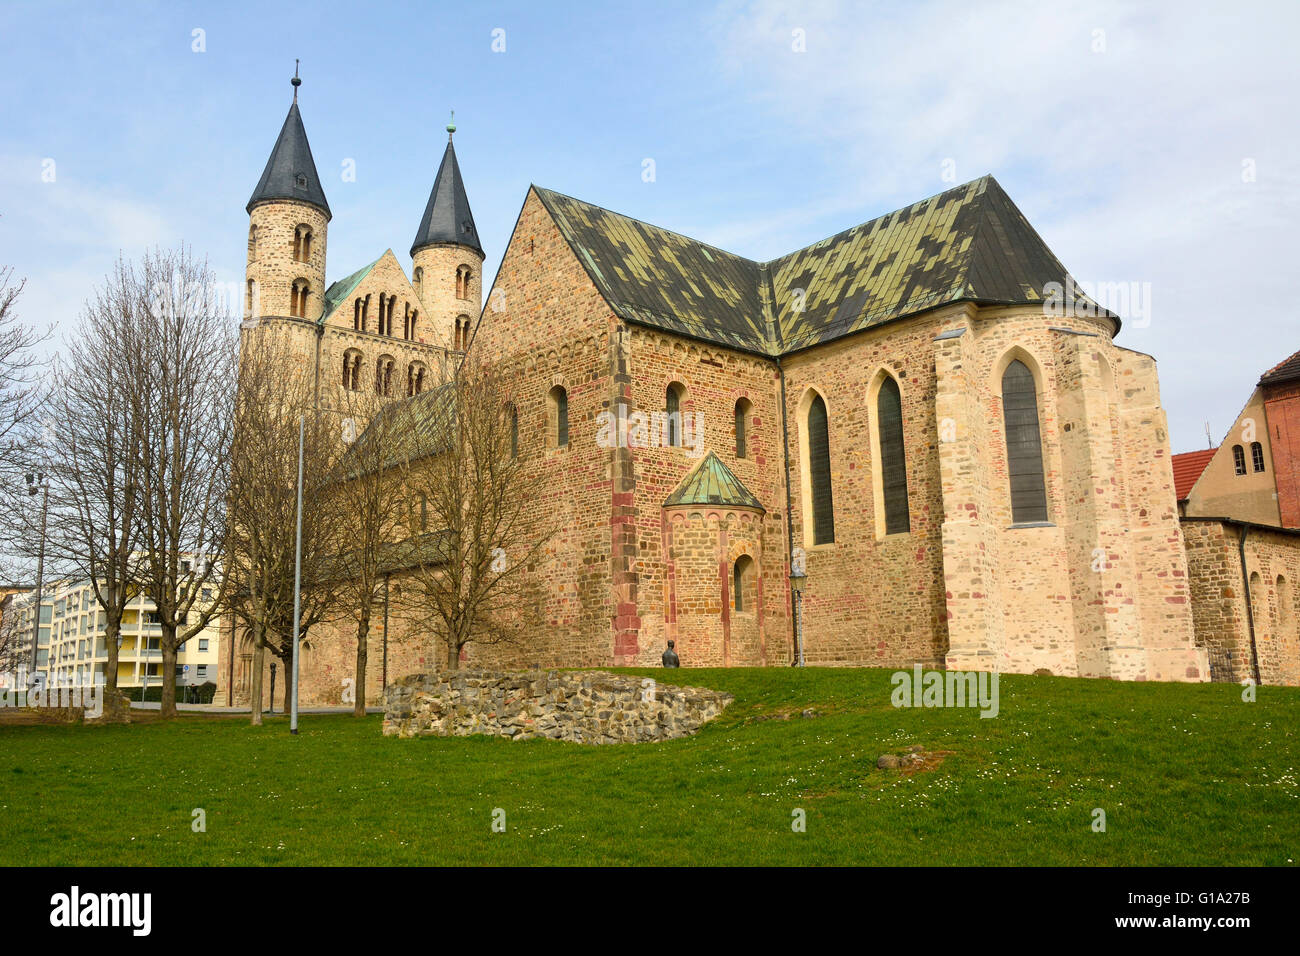 View of Klosterkirche St. Marien in Magdeburg, Germany - Stock Image